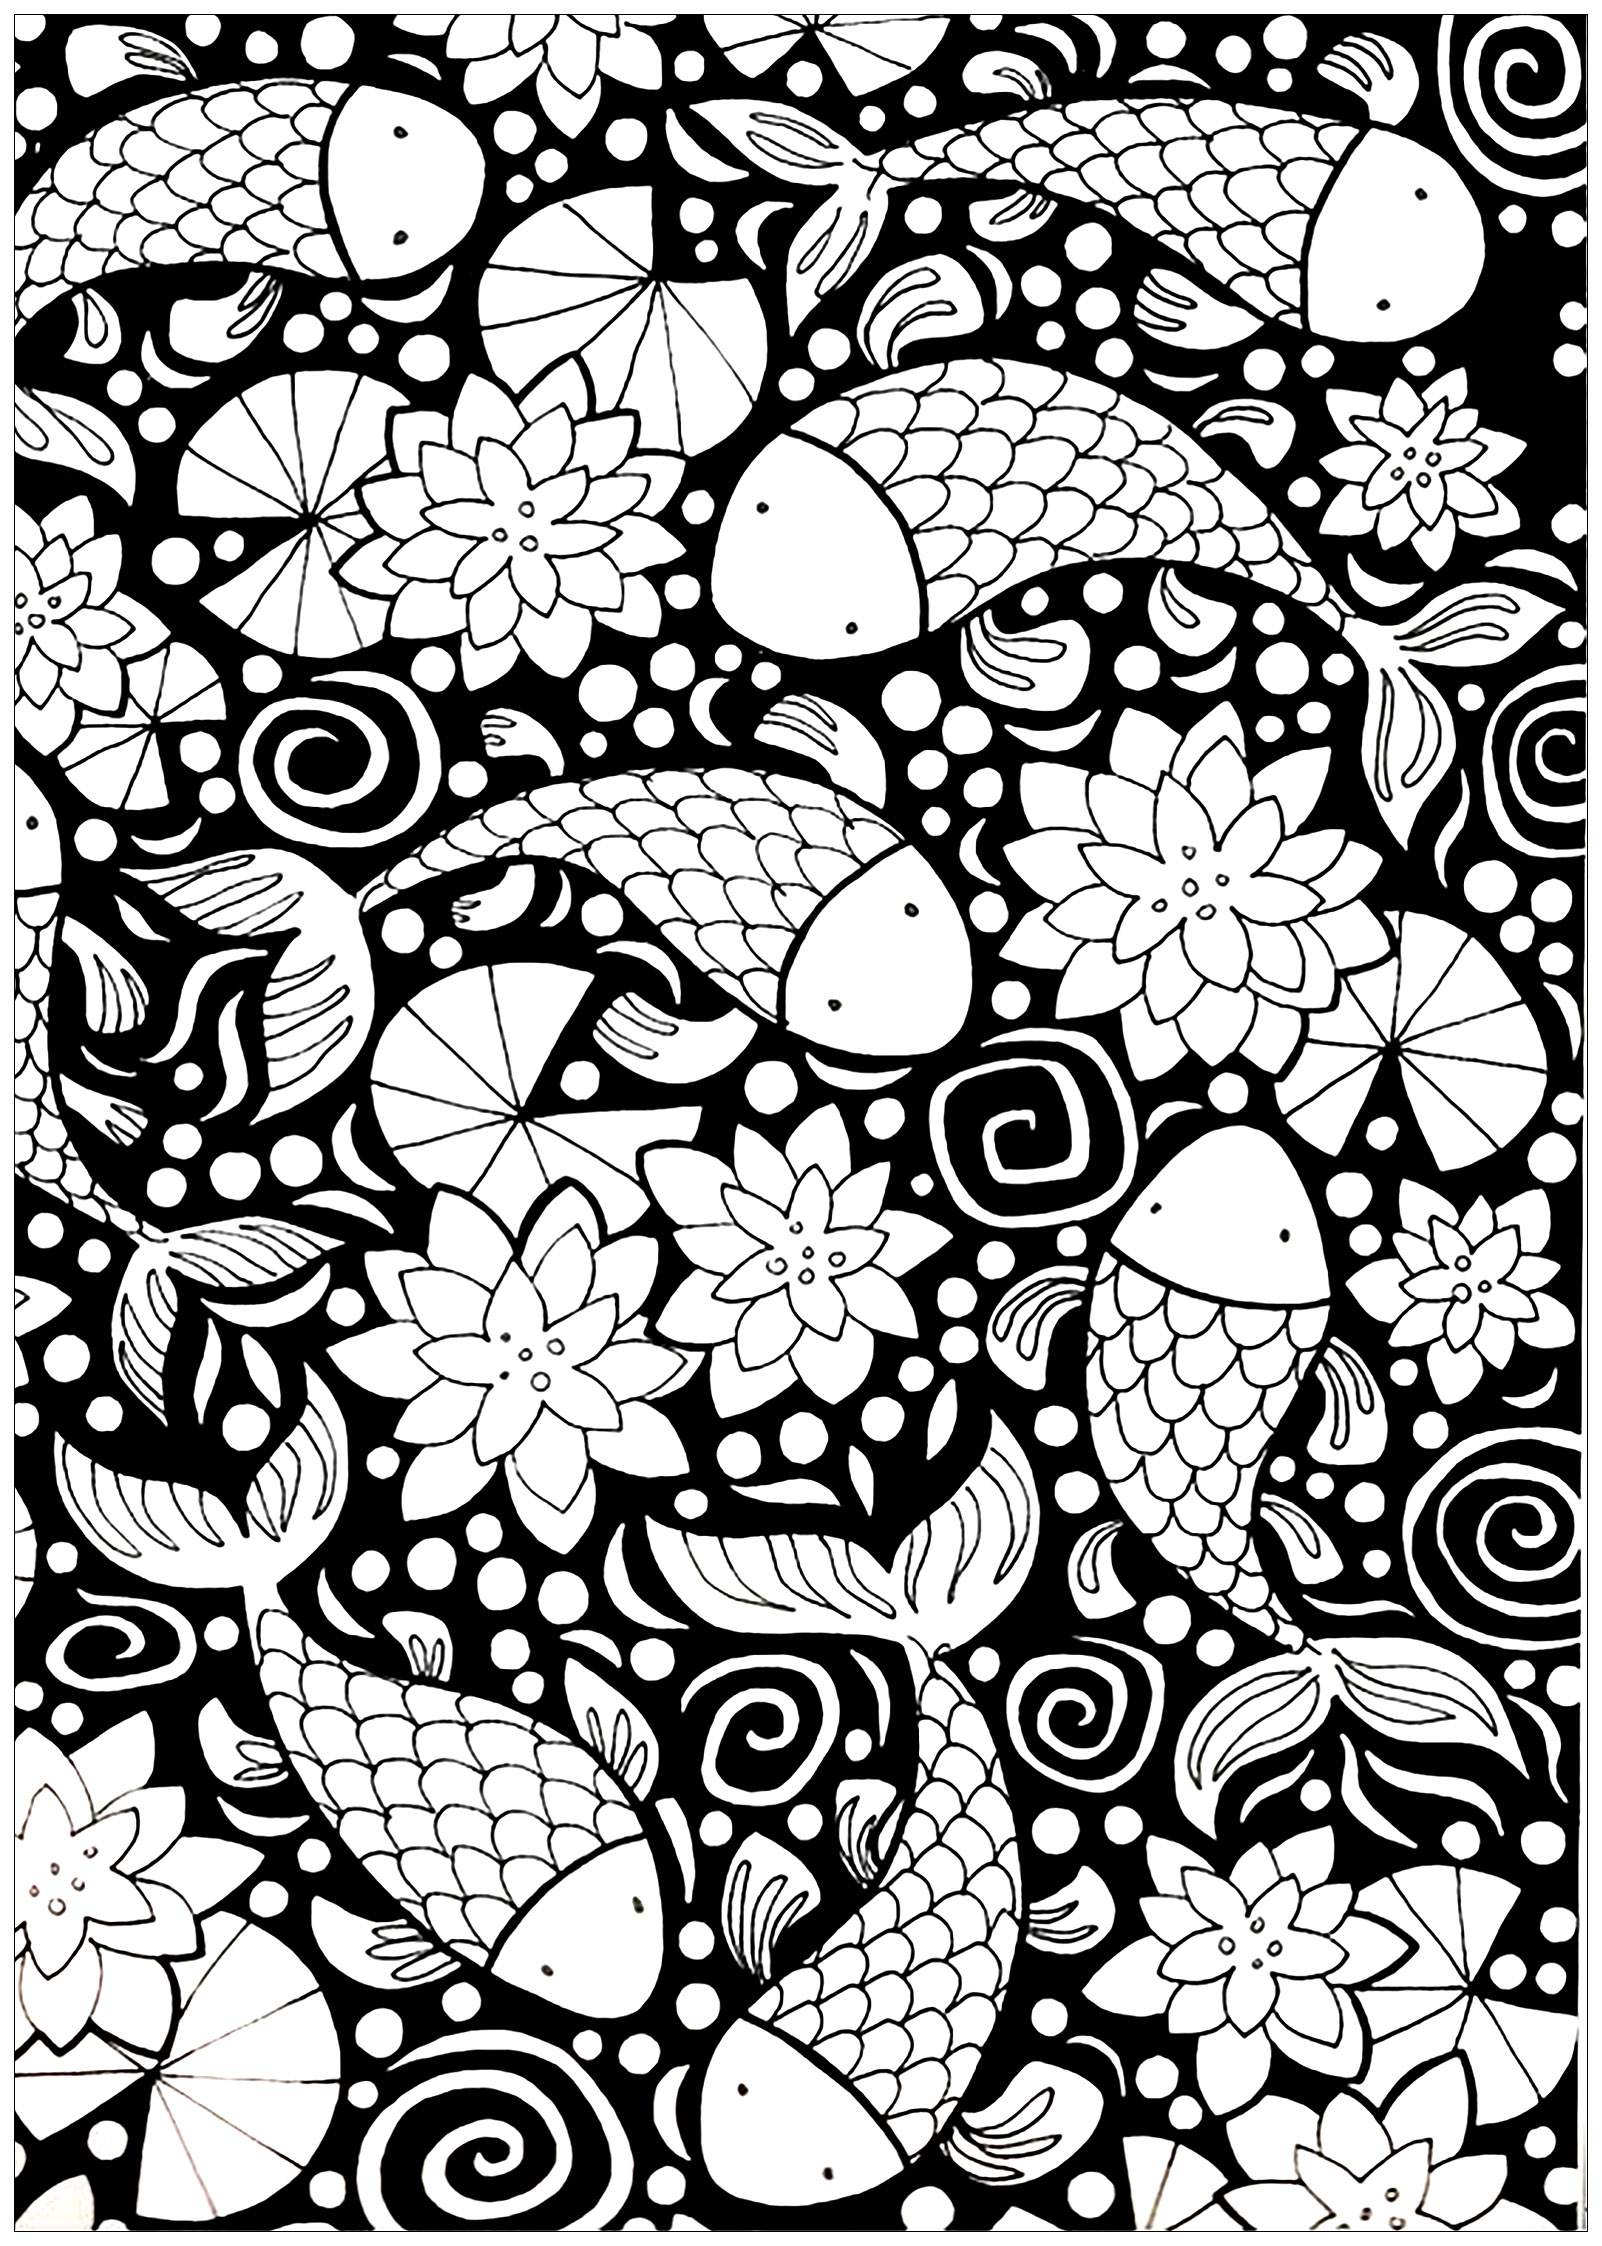 Pisces coloring page to download